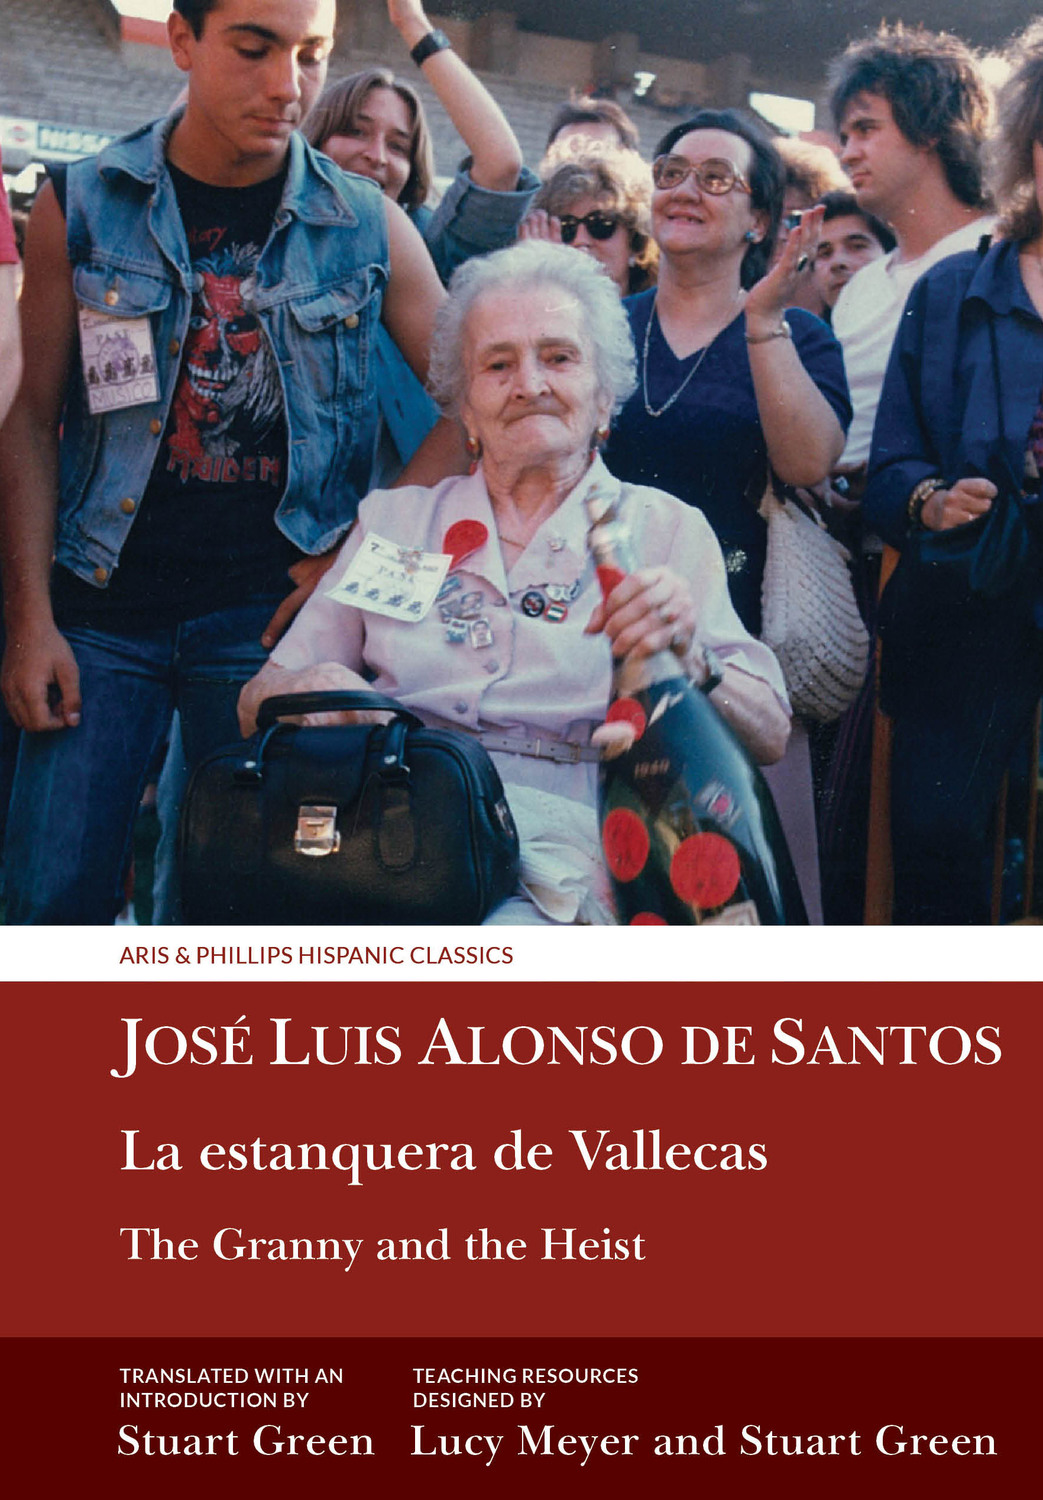 The Granny and the Heist / La estanquera de Vallecas